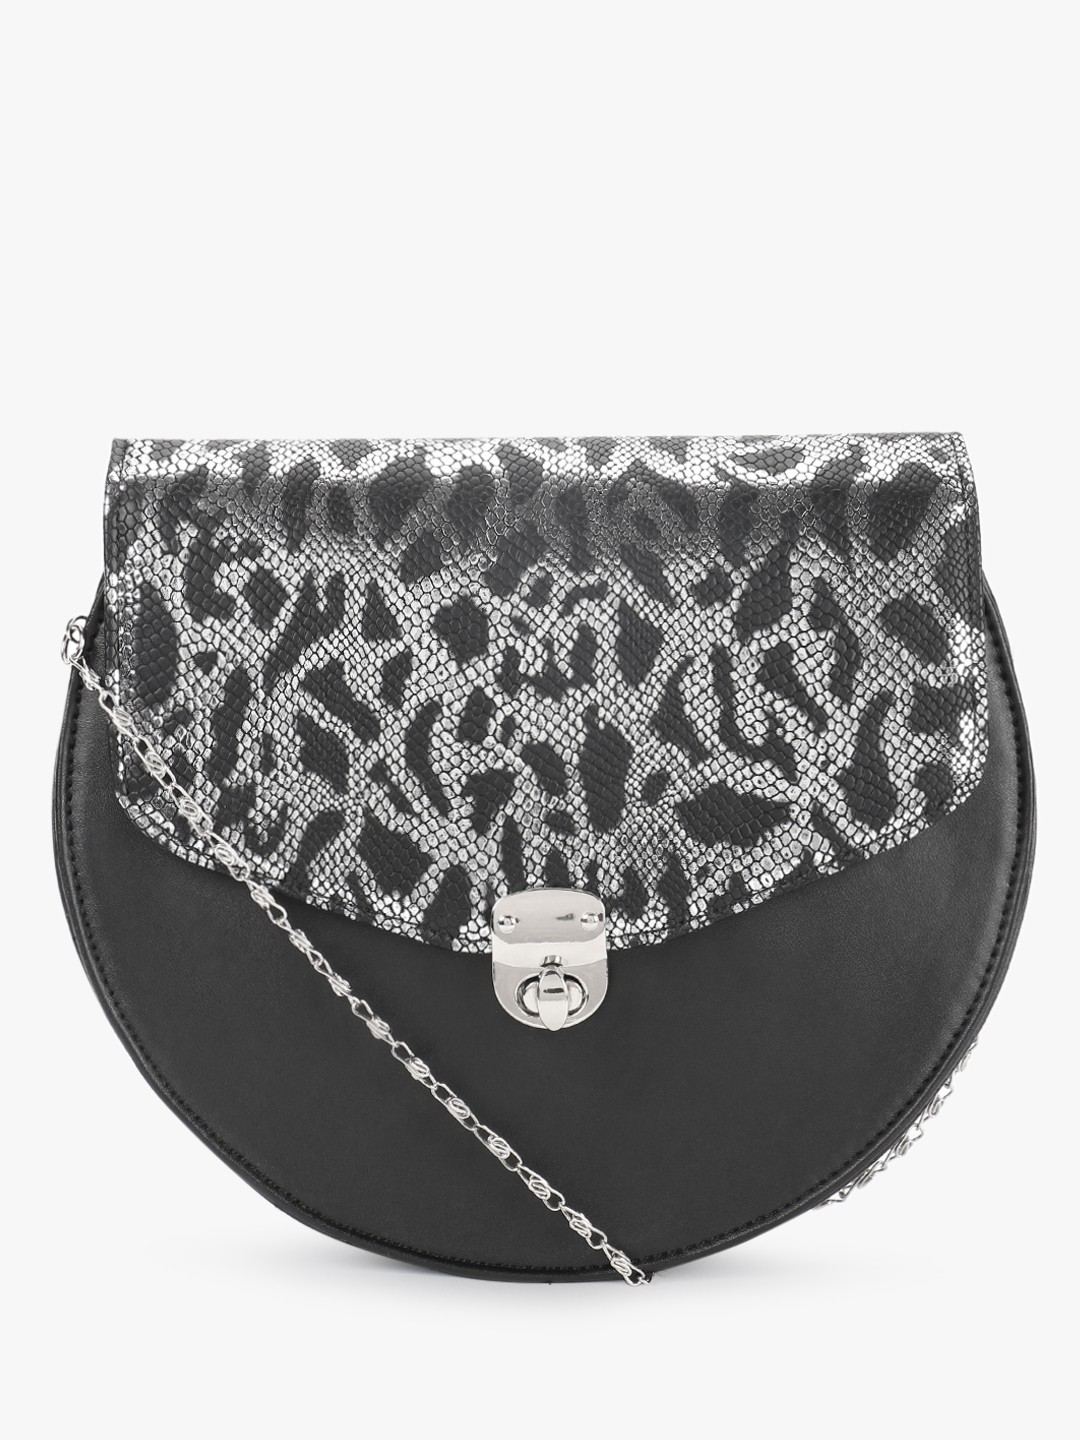 Gusto Black Snake Print Metallic Sling Bag 1